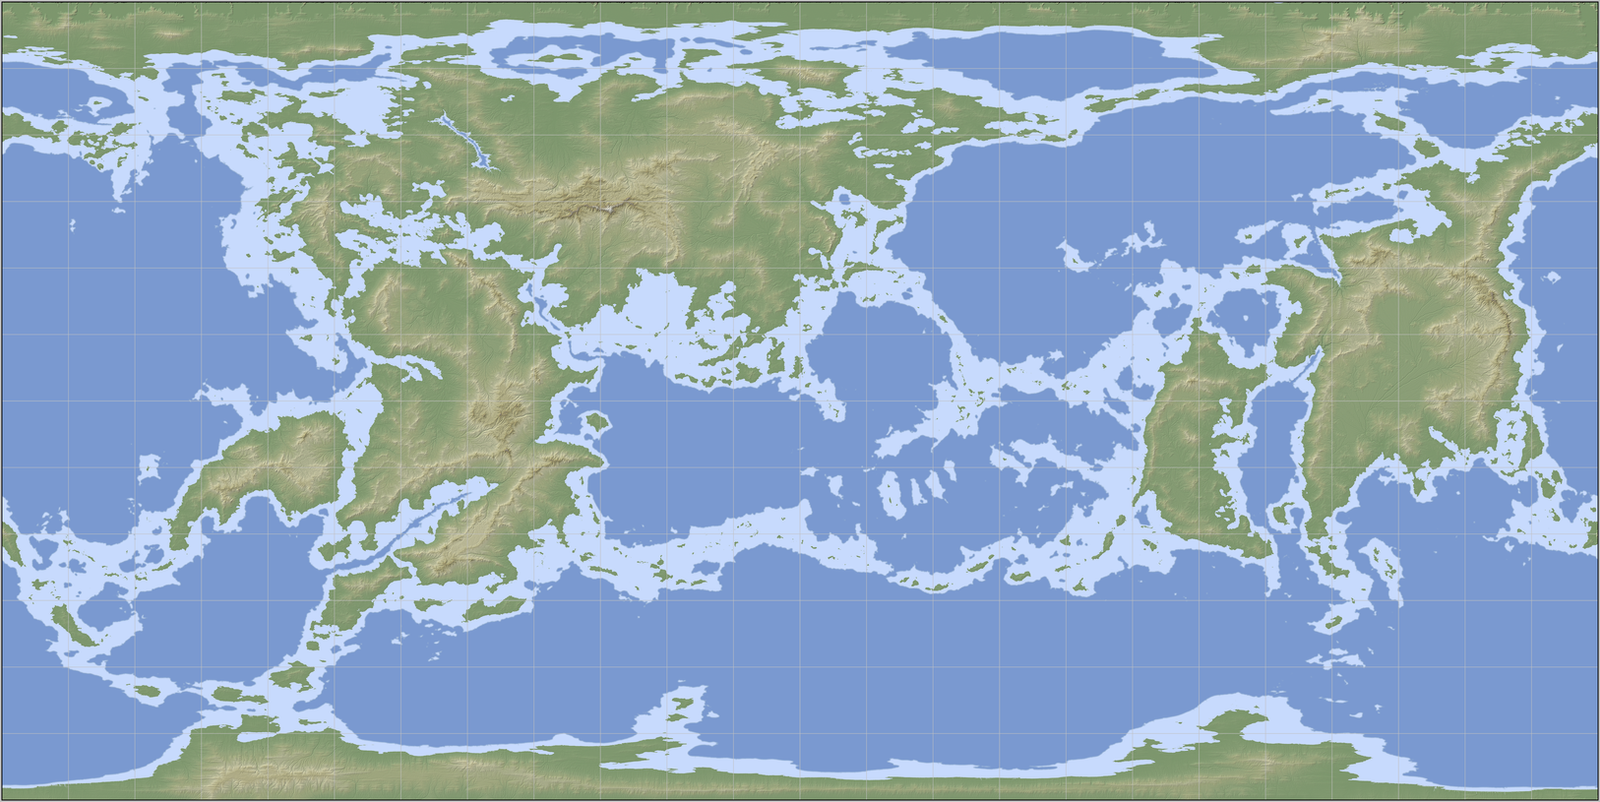 Thersis World geographical map by n-a-i-m-a on DeviantArt